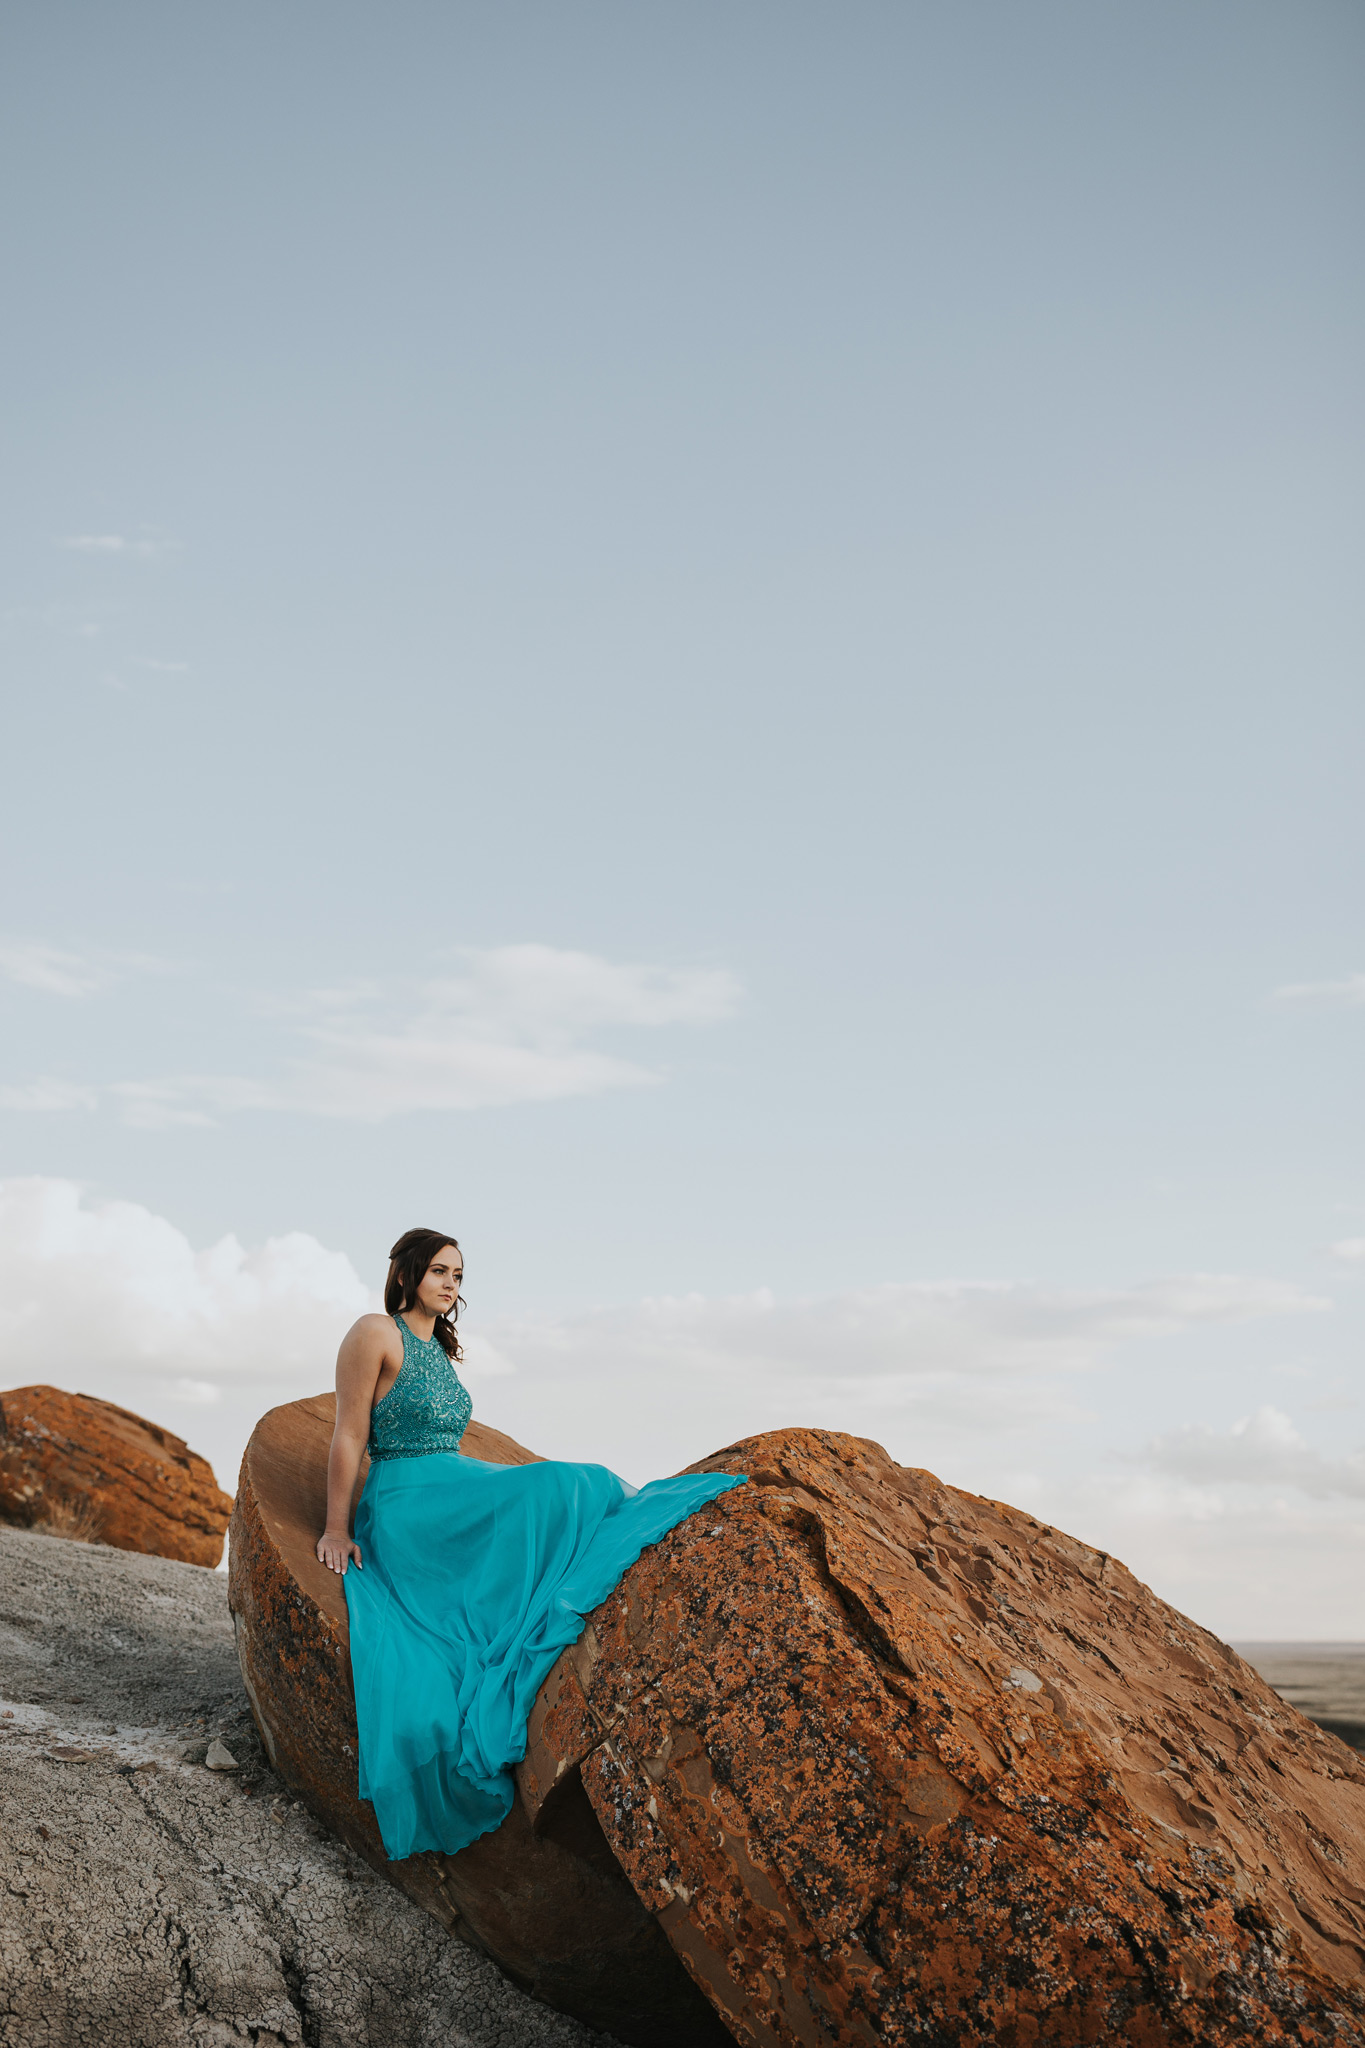 teenager sitting on huge red rock dress draped gracefully over edge